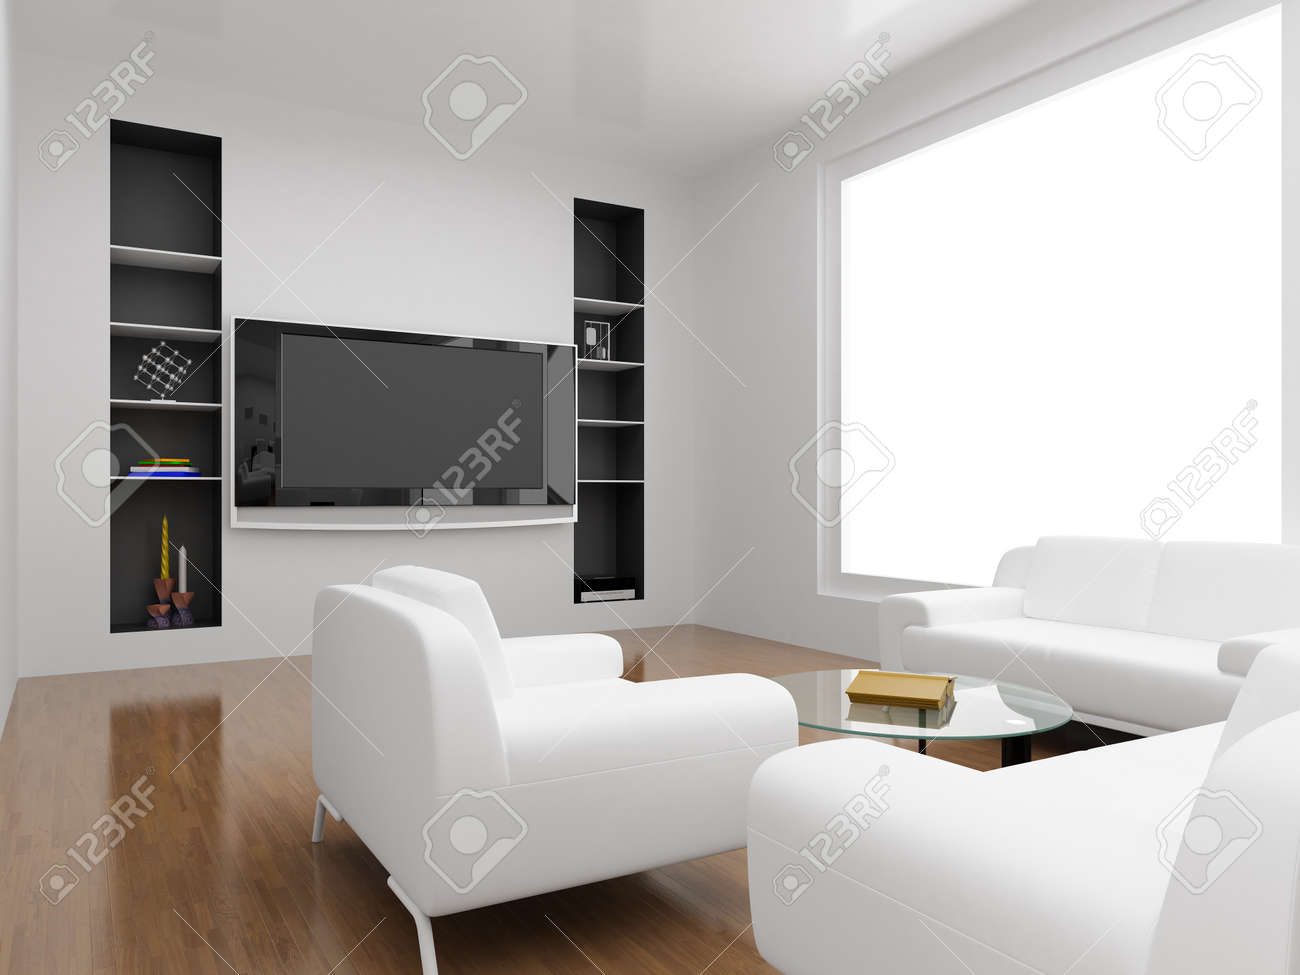 Interior Of The Modern Room. High Resolution Image. 3d Rendered  Illustration. Stock Illustration Part 42